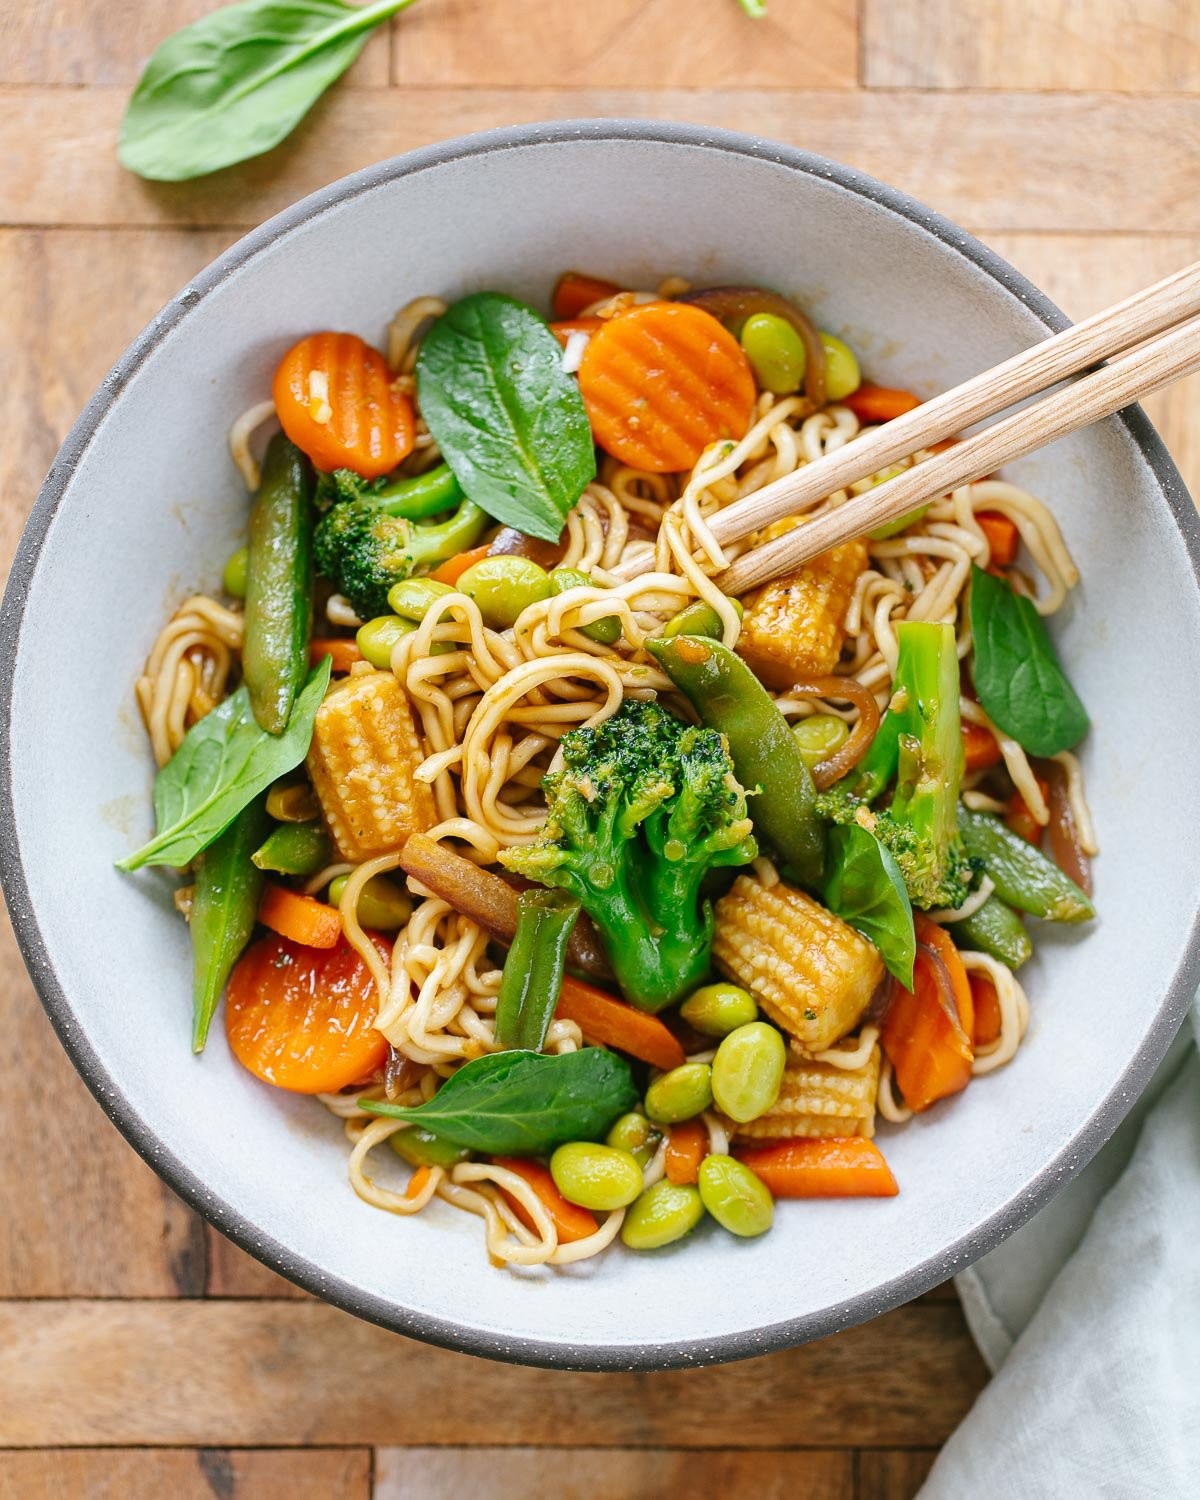 A white bowl with chopsticks serving ramen noodles mixed with stir-fried carrots, corn, broccoli, edamame and spinach.